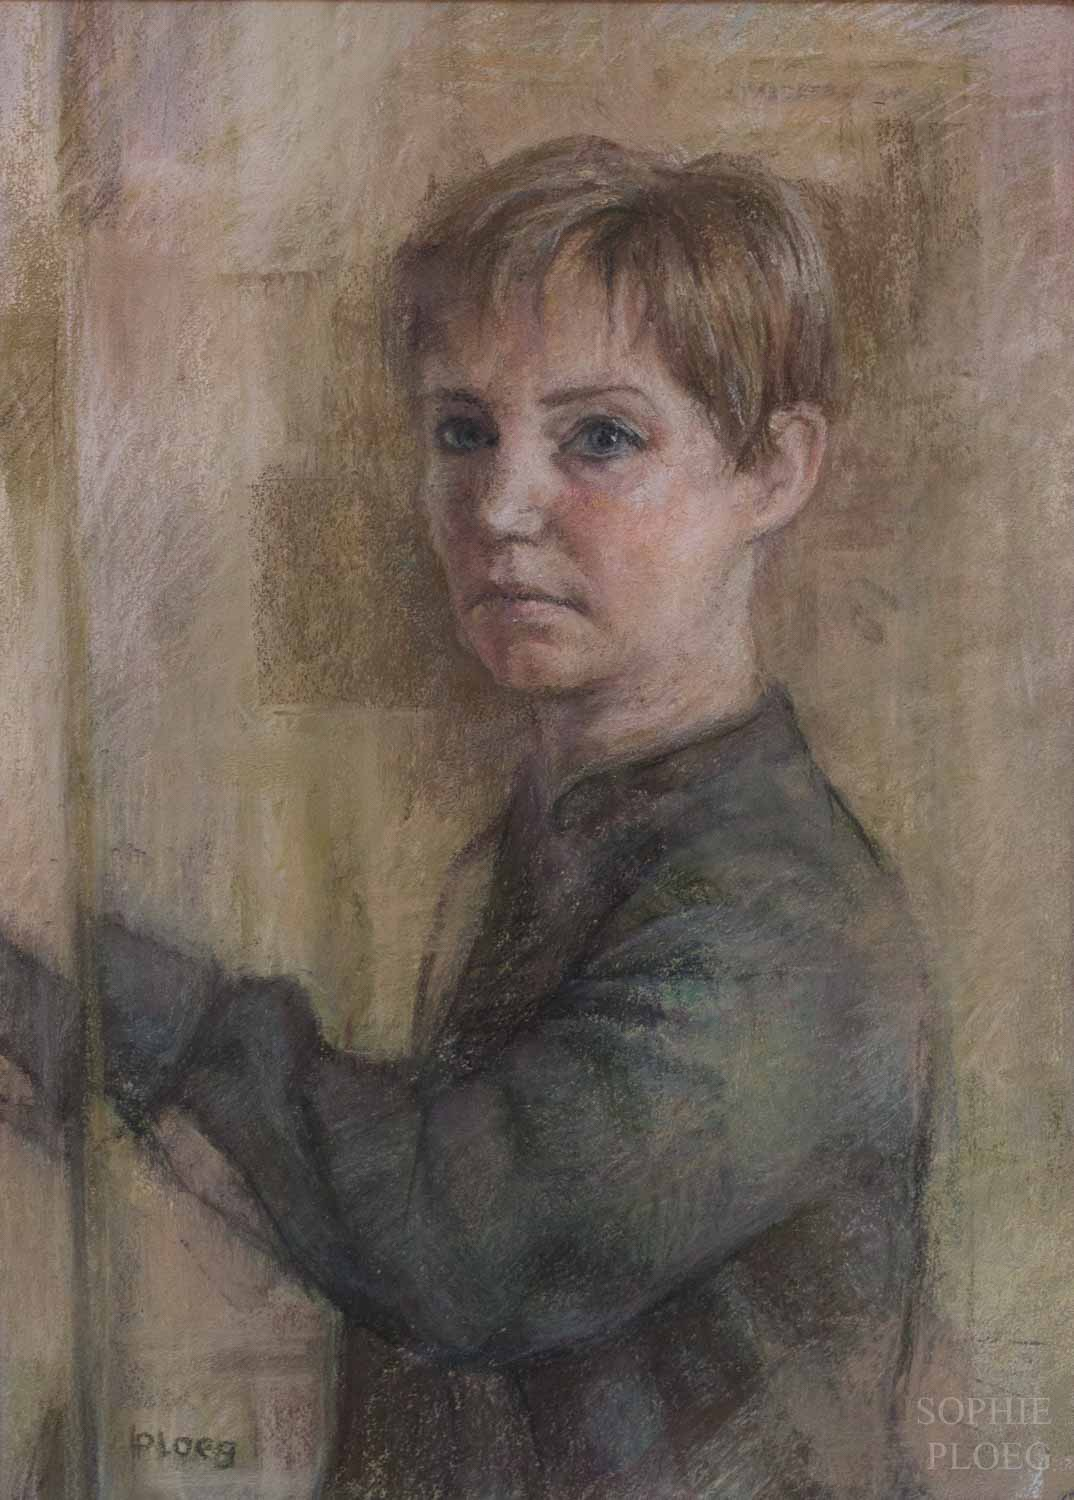 Sophie Ploeg, Self Portrait January 2018, pastel on paper